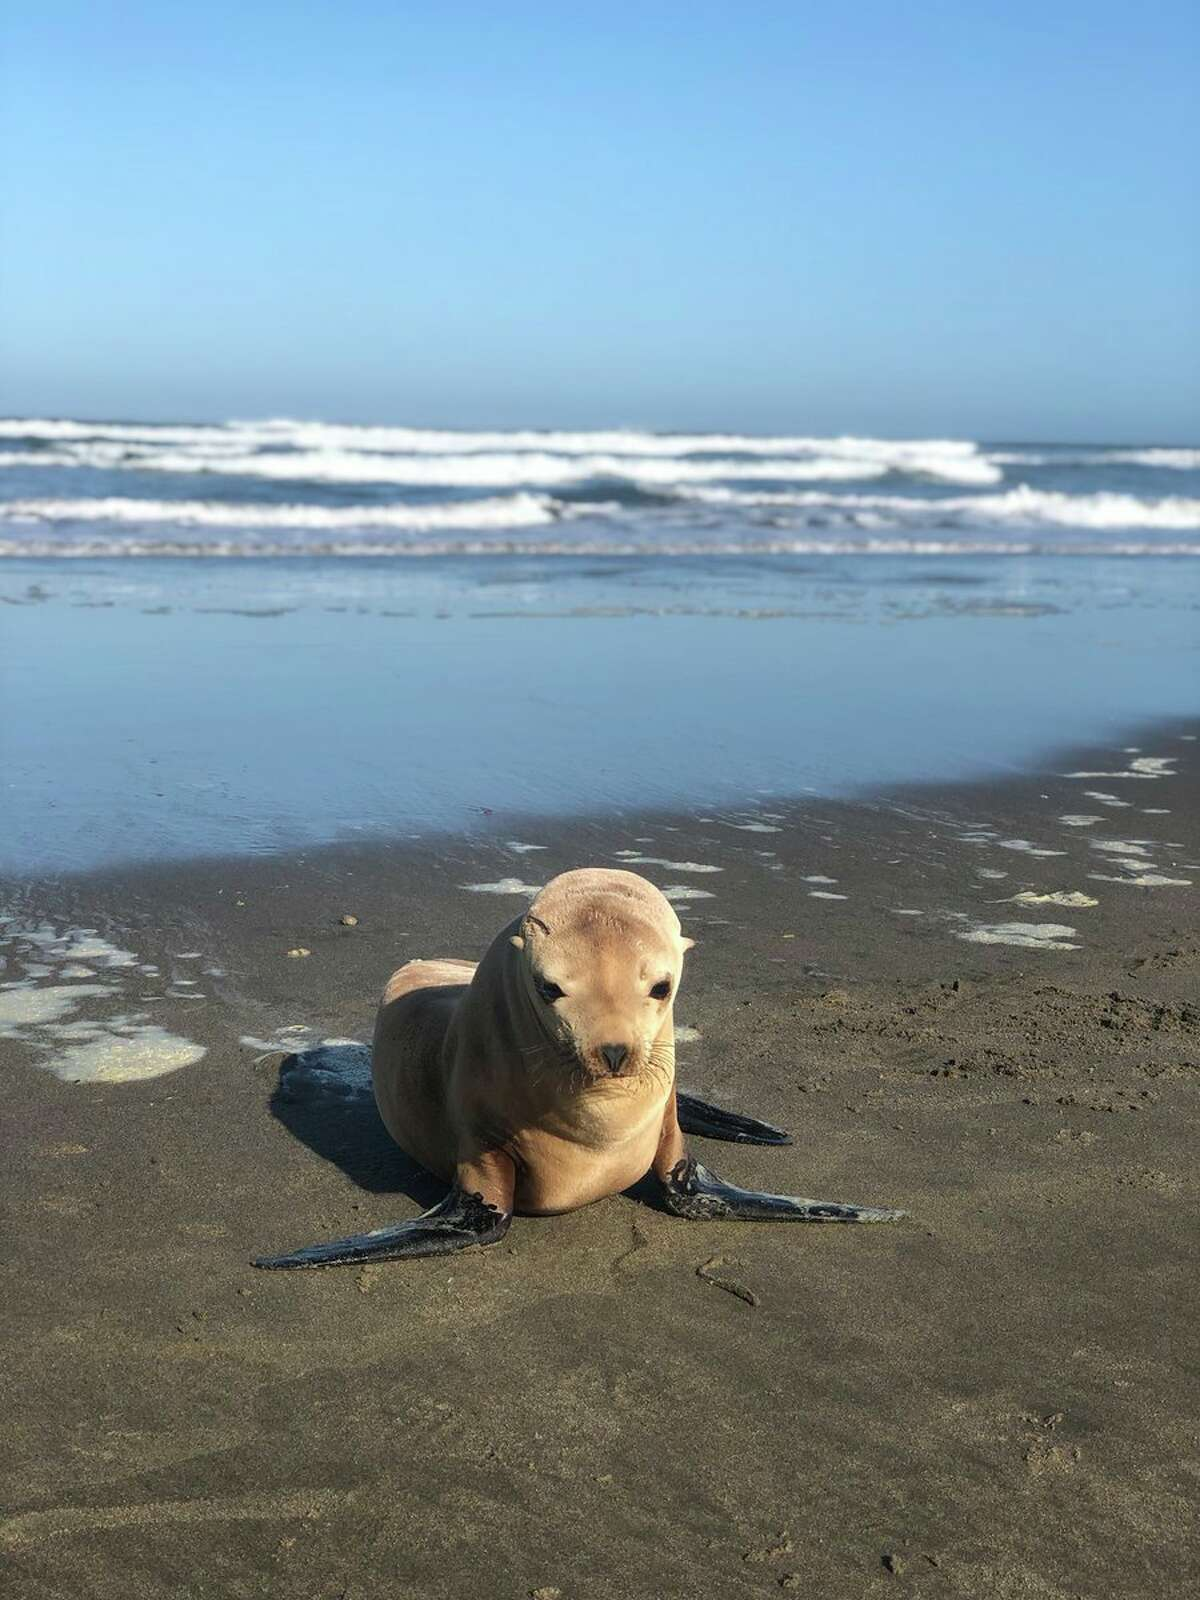 A sickly-looking sea lion was found alone at Ocean Beach on Wednesday, July 3, 2019.